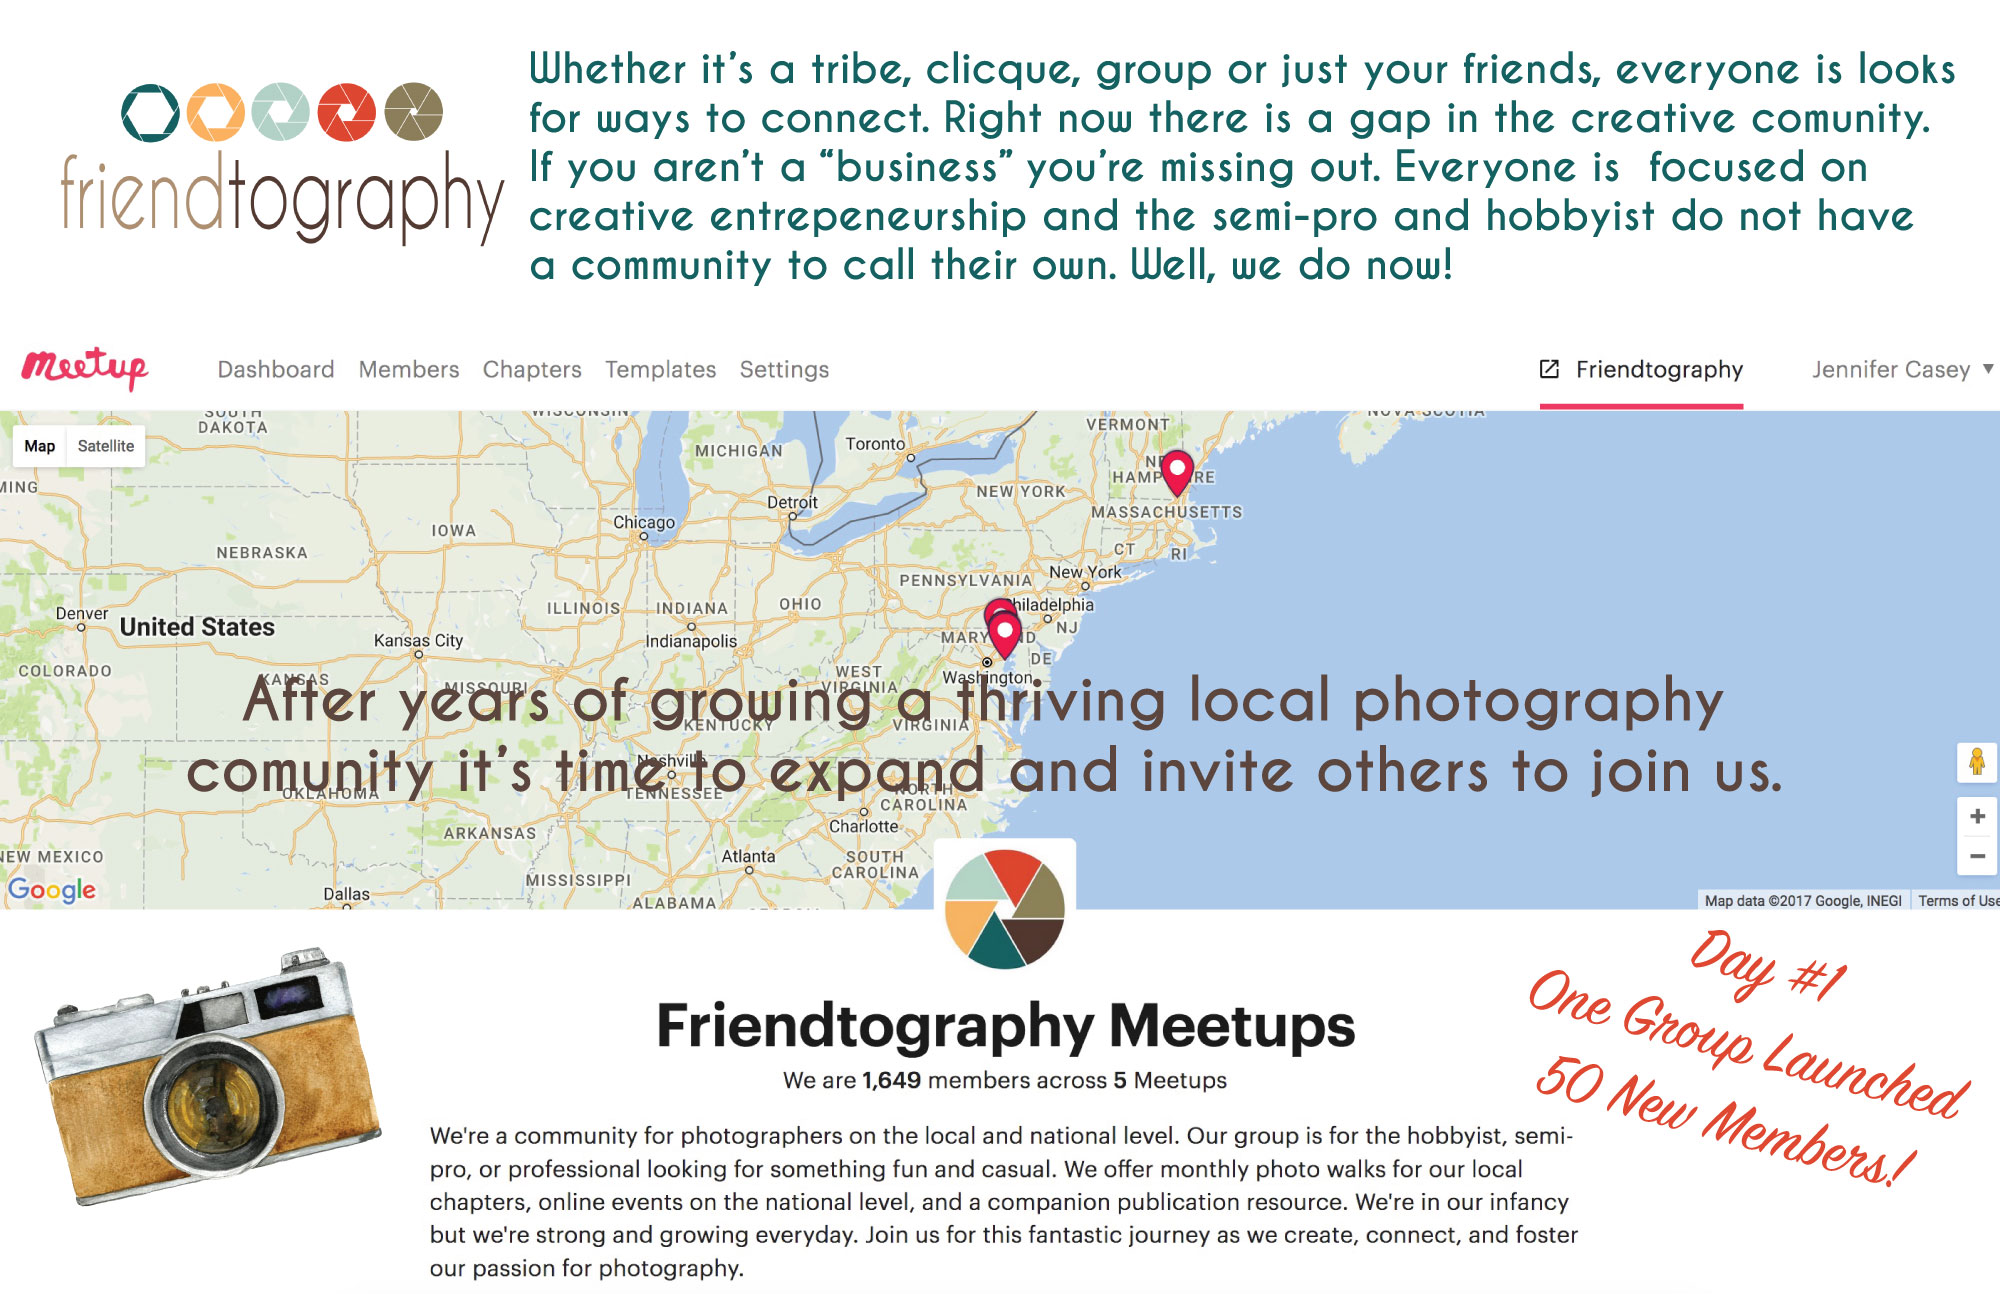 friendtography-find-your-tribe.jpg